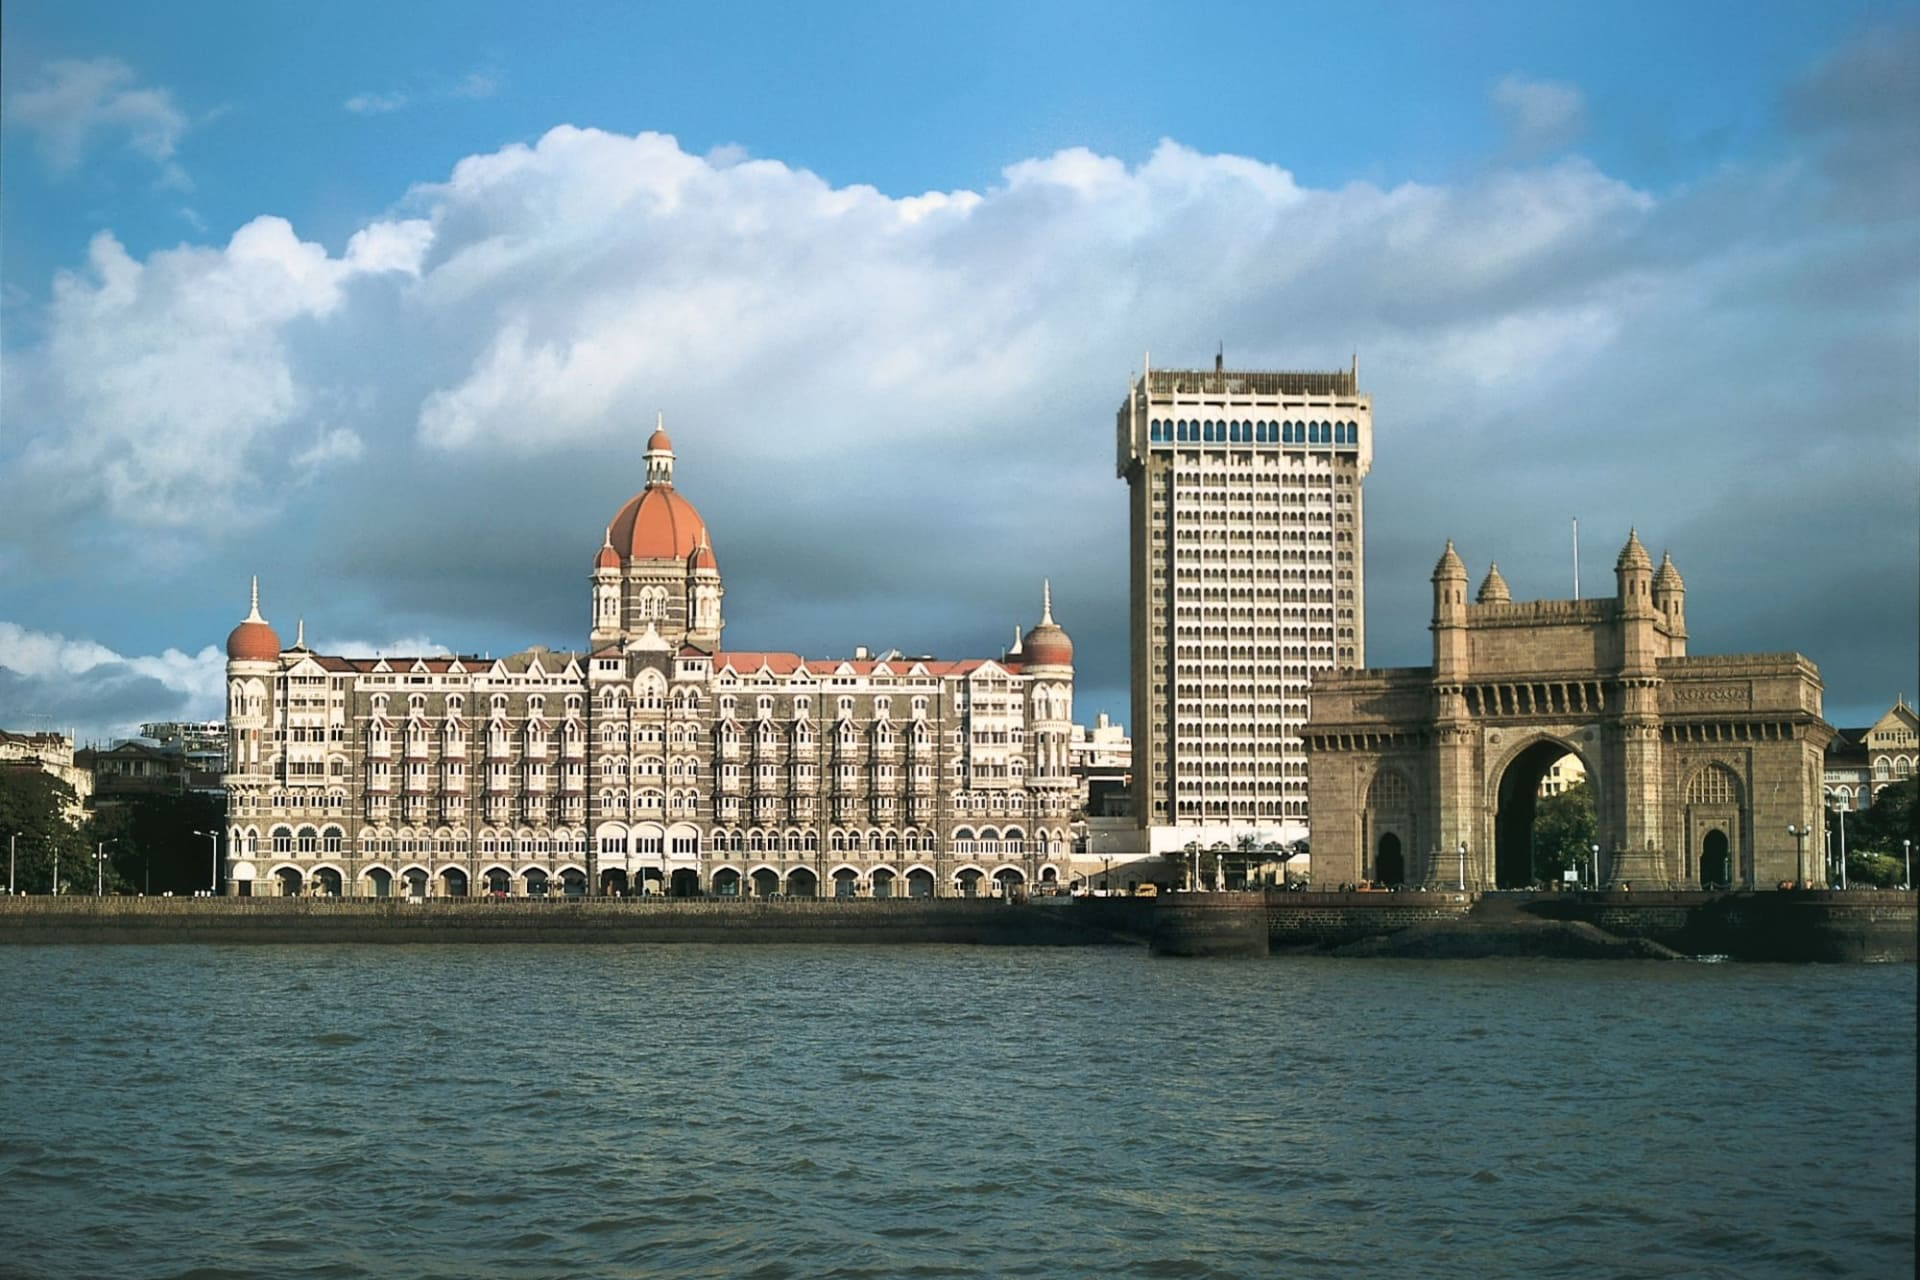 location: Mumbai Taj Mahal Palace with Gateway of India